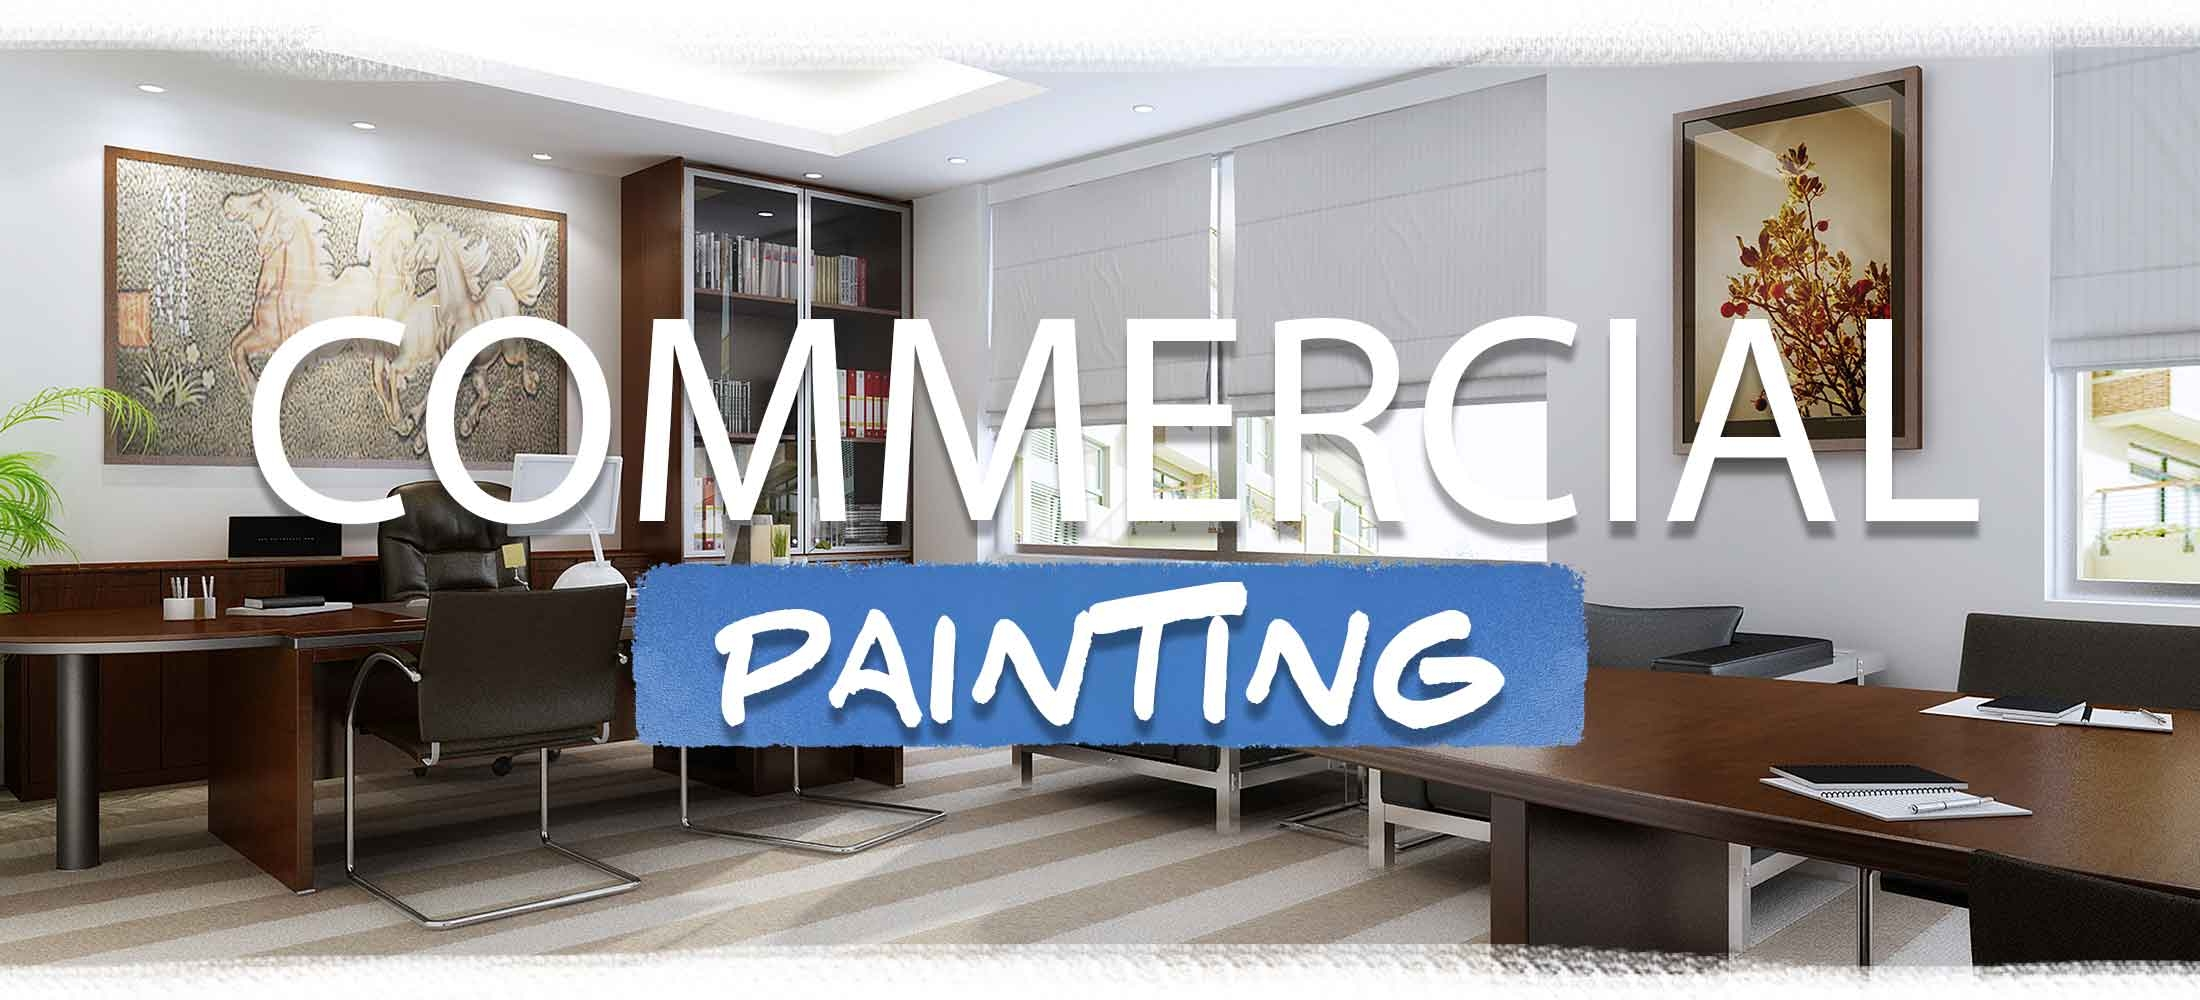 Boston Painting Company   Commercial Painting Contractor MA